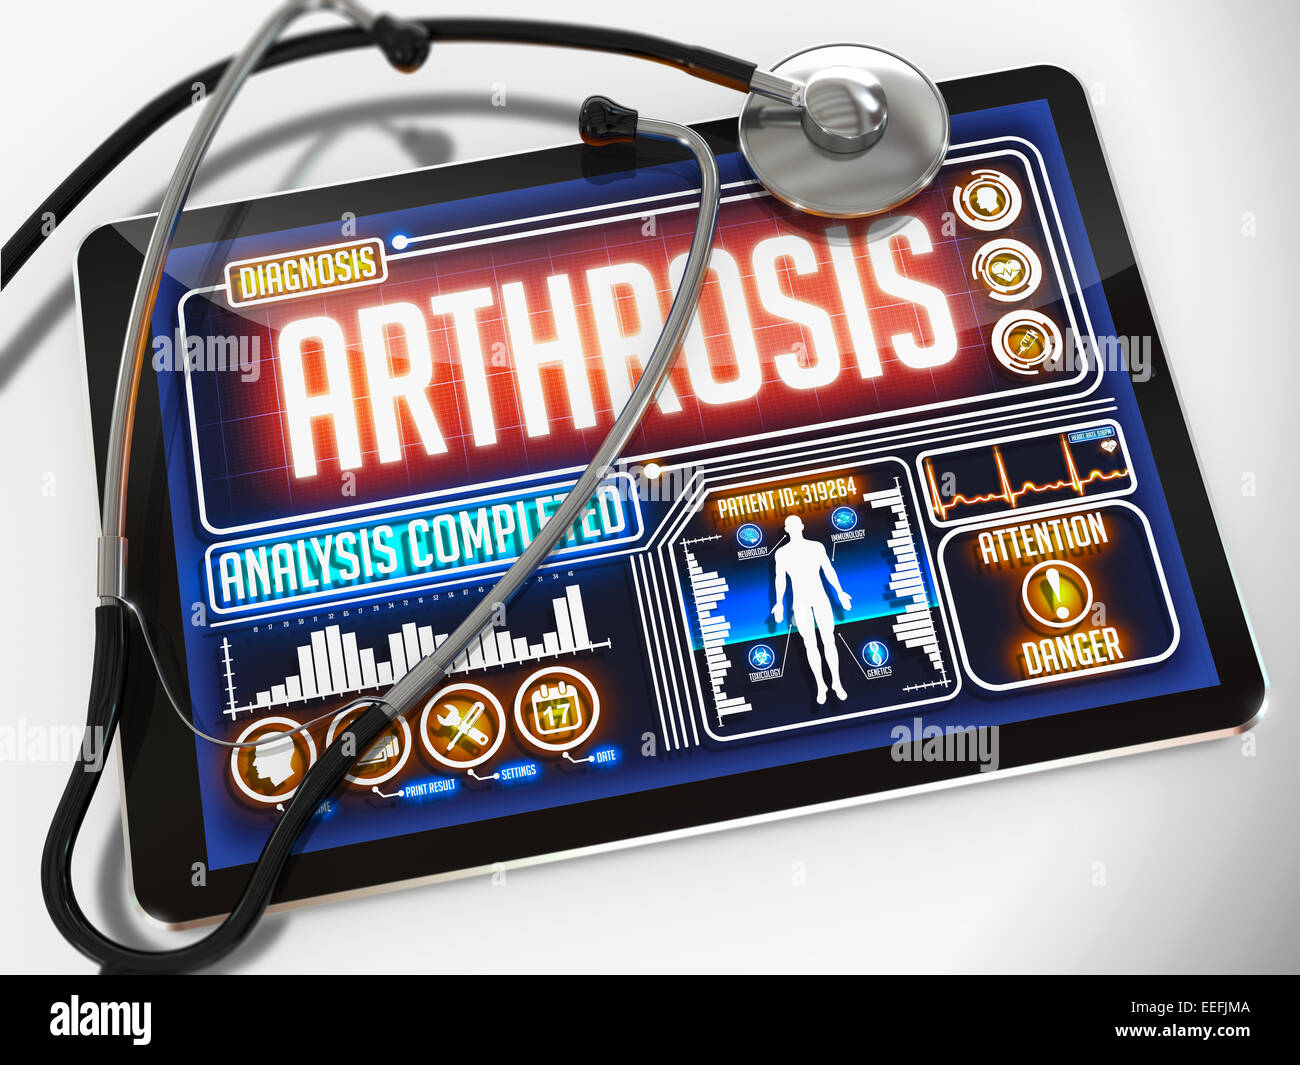 Arthrosis on the Display of Medical Tablet. - Stock Image